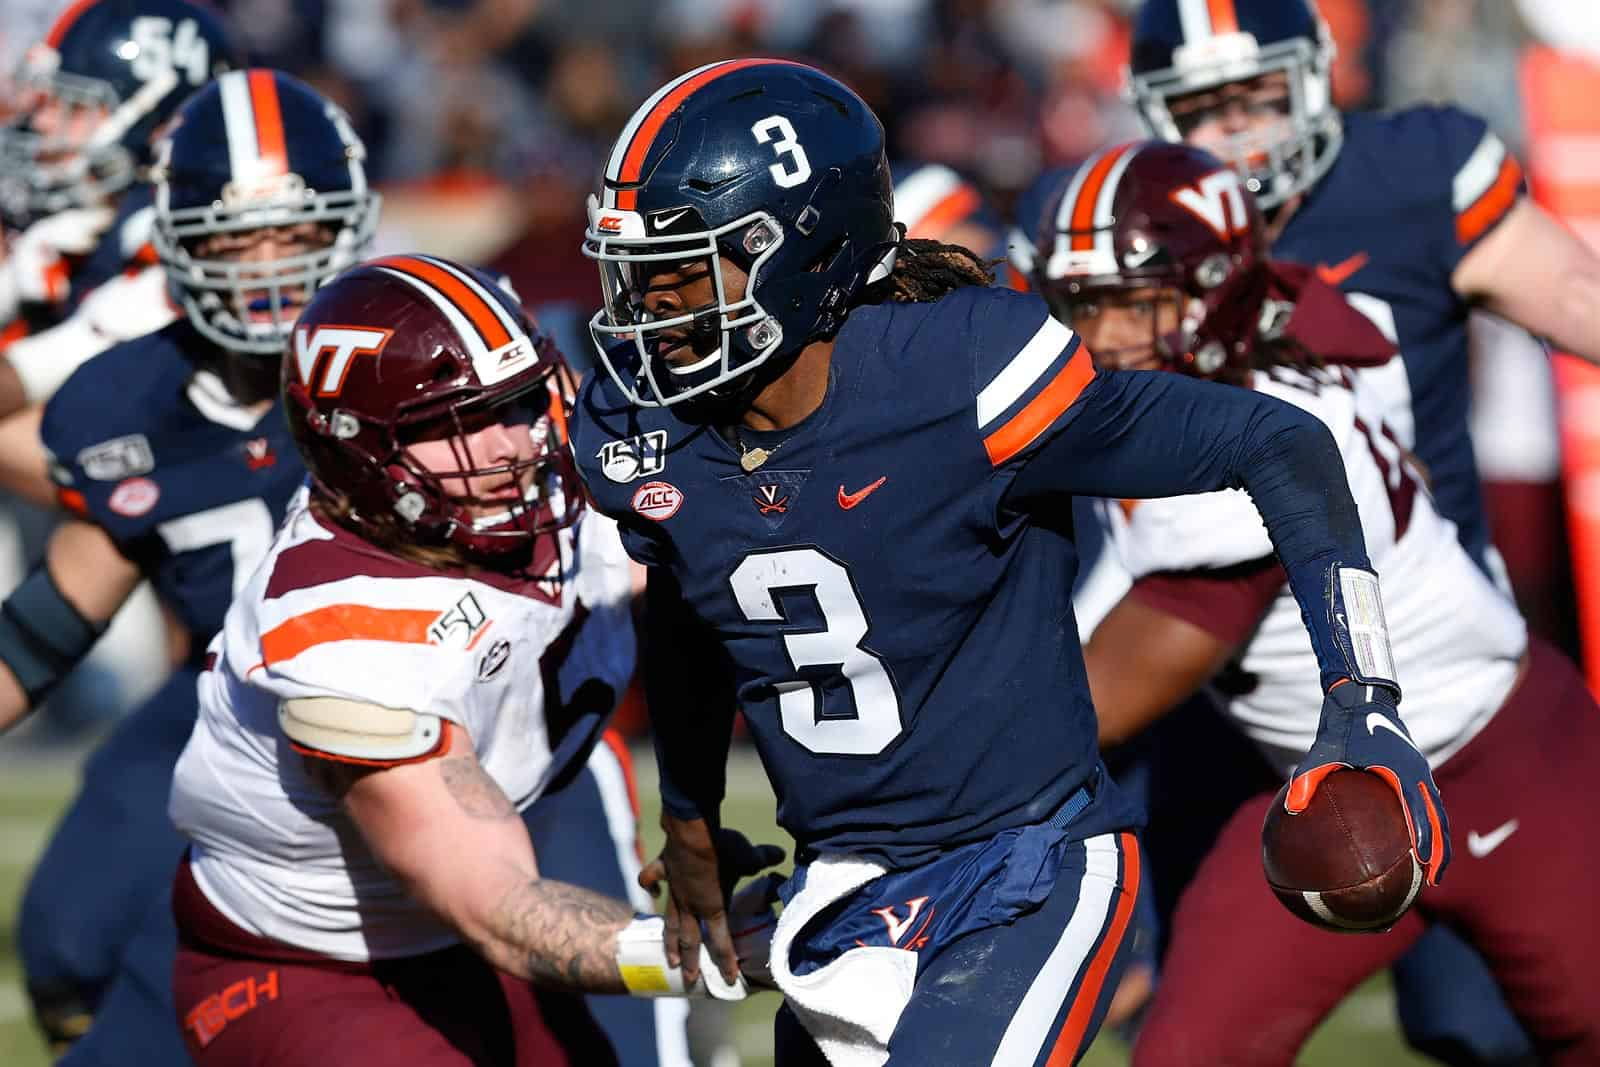 Virginia Cavaliers now will meet Virginia Tech Hokies on December 12